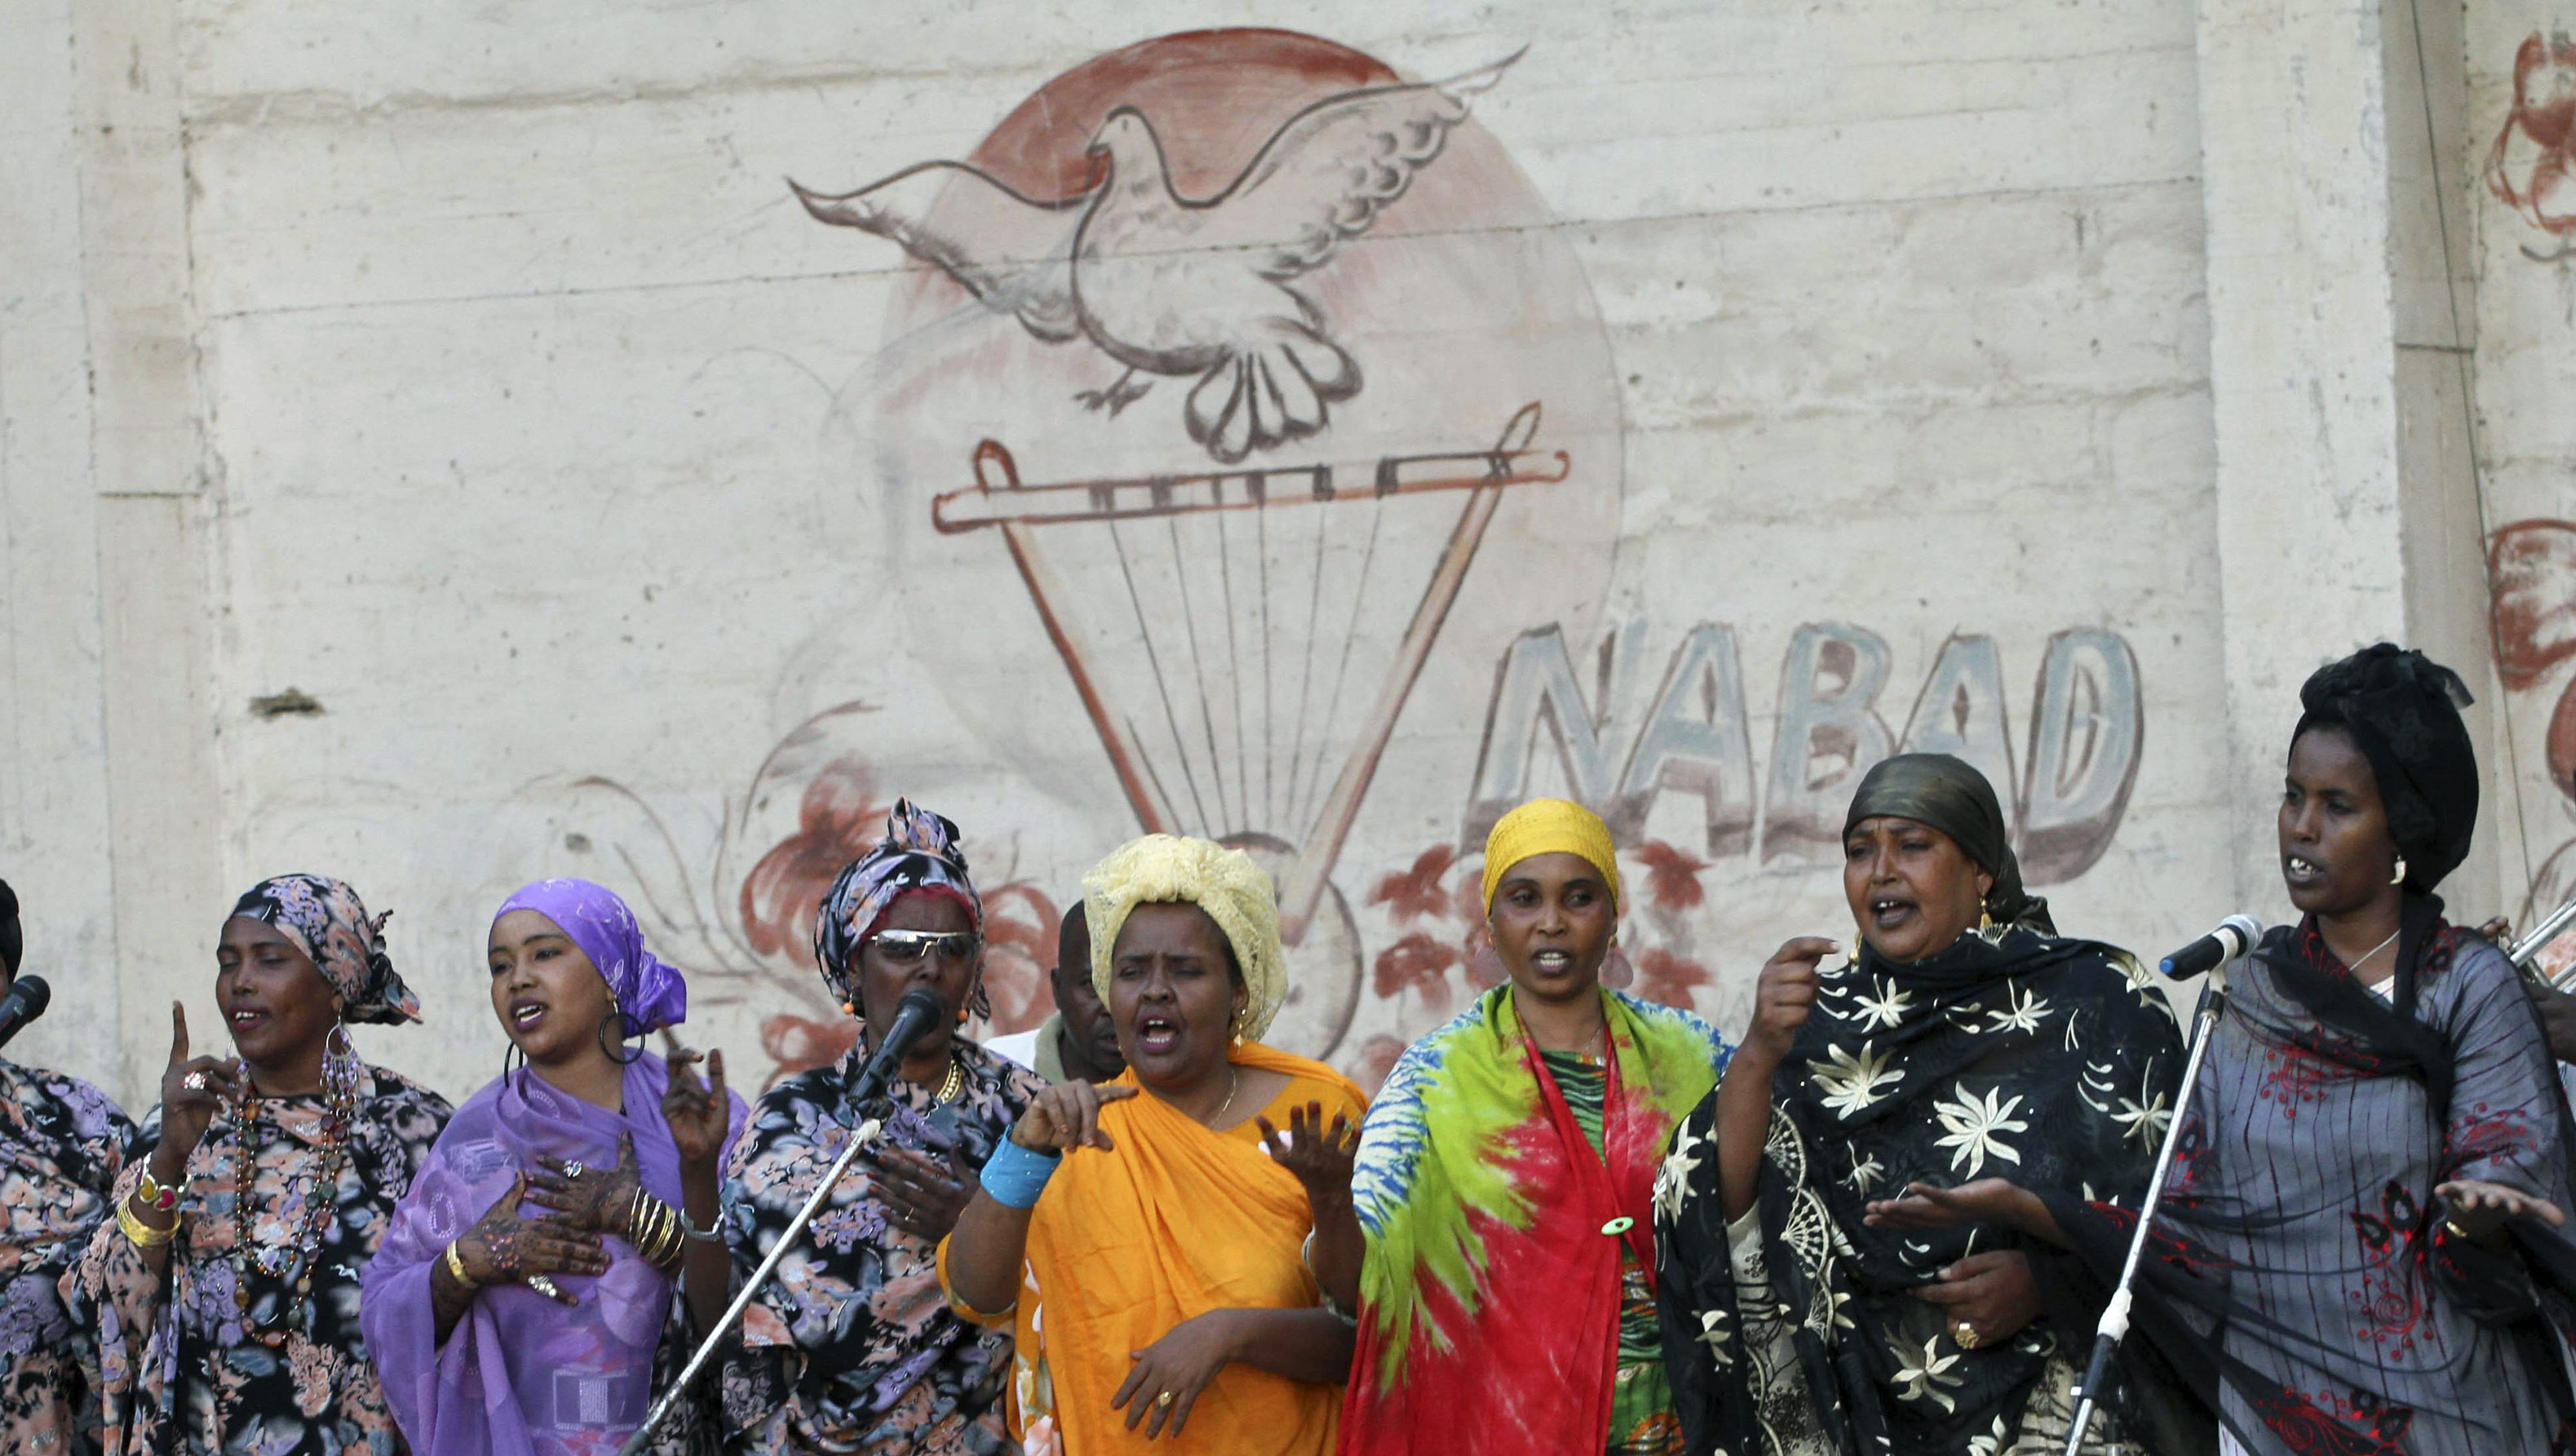 Somali national singers perform inside the National Theatre in Somalia's capital Mogadishu, March 19, 2012. In the roofless, bullet-ridden building that houses Mogadishu's National Theatre, Somali musicians staged a concert for the first time in 20 years, a sign of a marked improvement in security in the war-ravaged Horn of Africa country. Picture taken March 19, 2012.